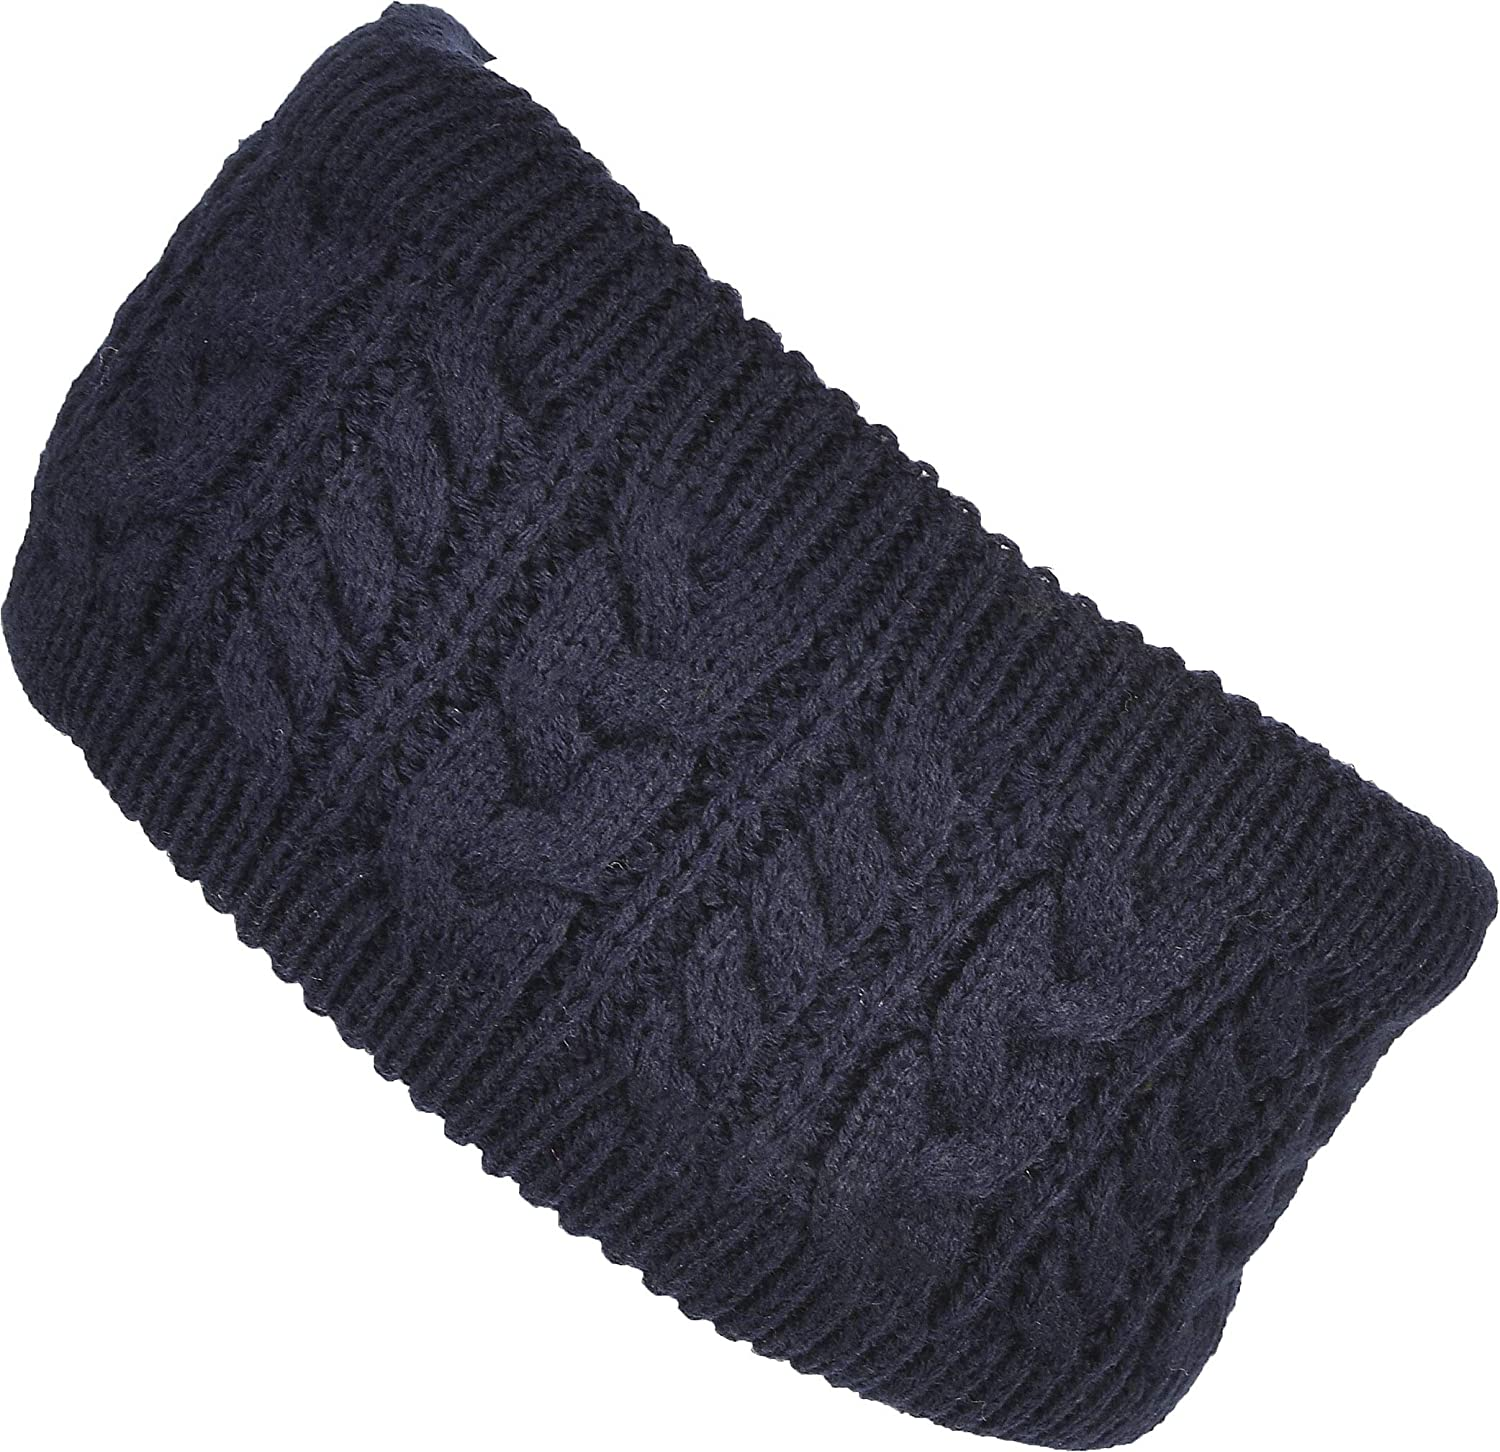 Hand By Hand Cable Knit Headband Sherpa Lined Ear Warmer Winter Warm